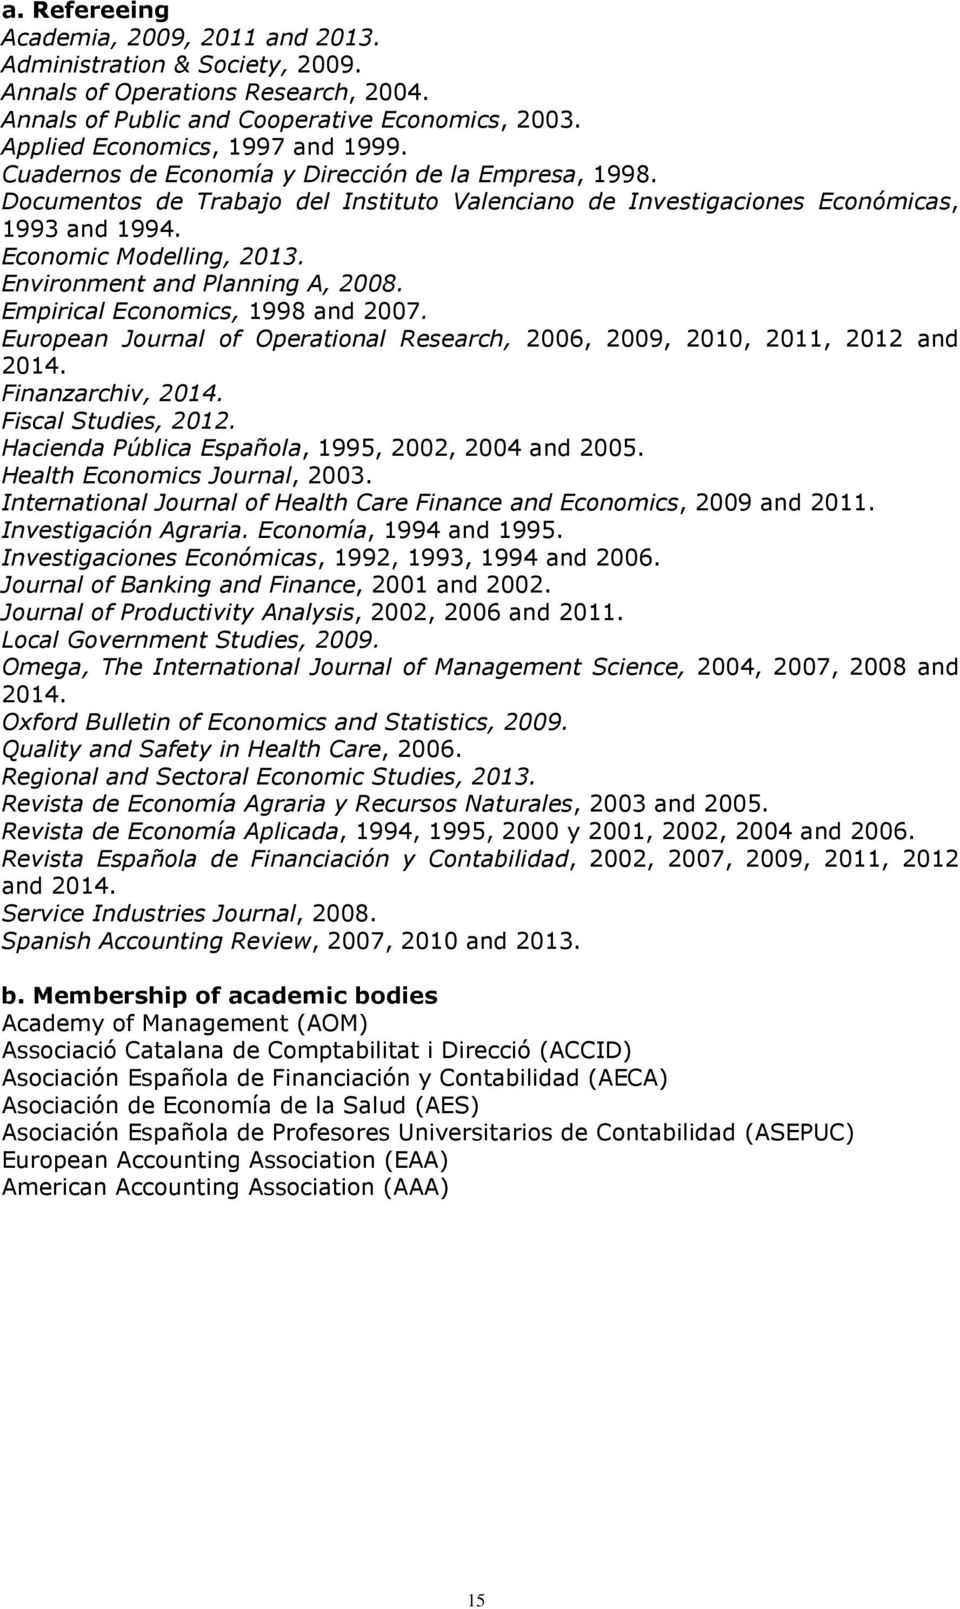 Environment and Planning A, 2008. Empirical Economics, 1998 and 2007. European Journal of Operational Research, 2006, 2009, 2010, 2011, 2012 and 2014. Finanzarchiv, 2014. Fiscal Studies, 2012.